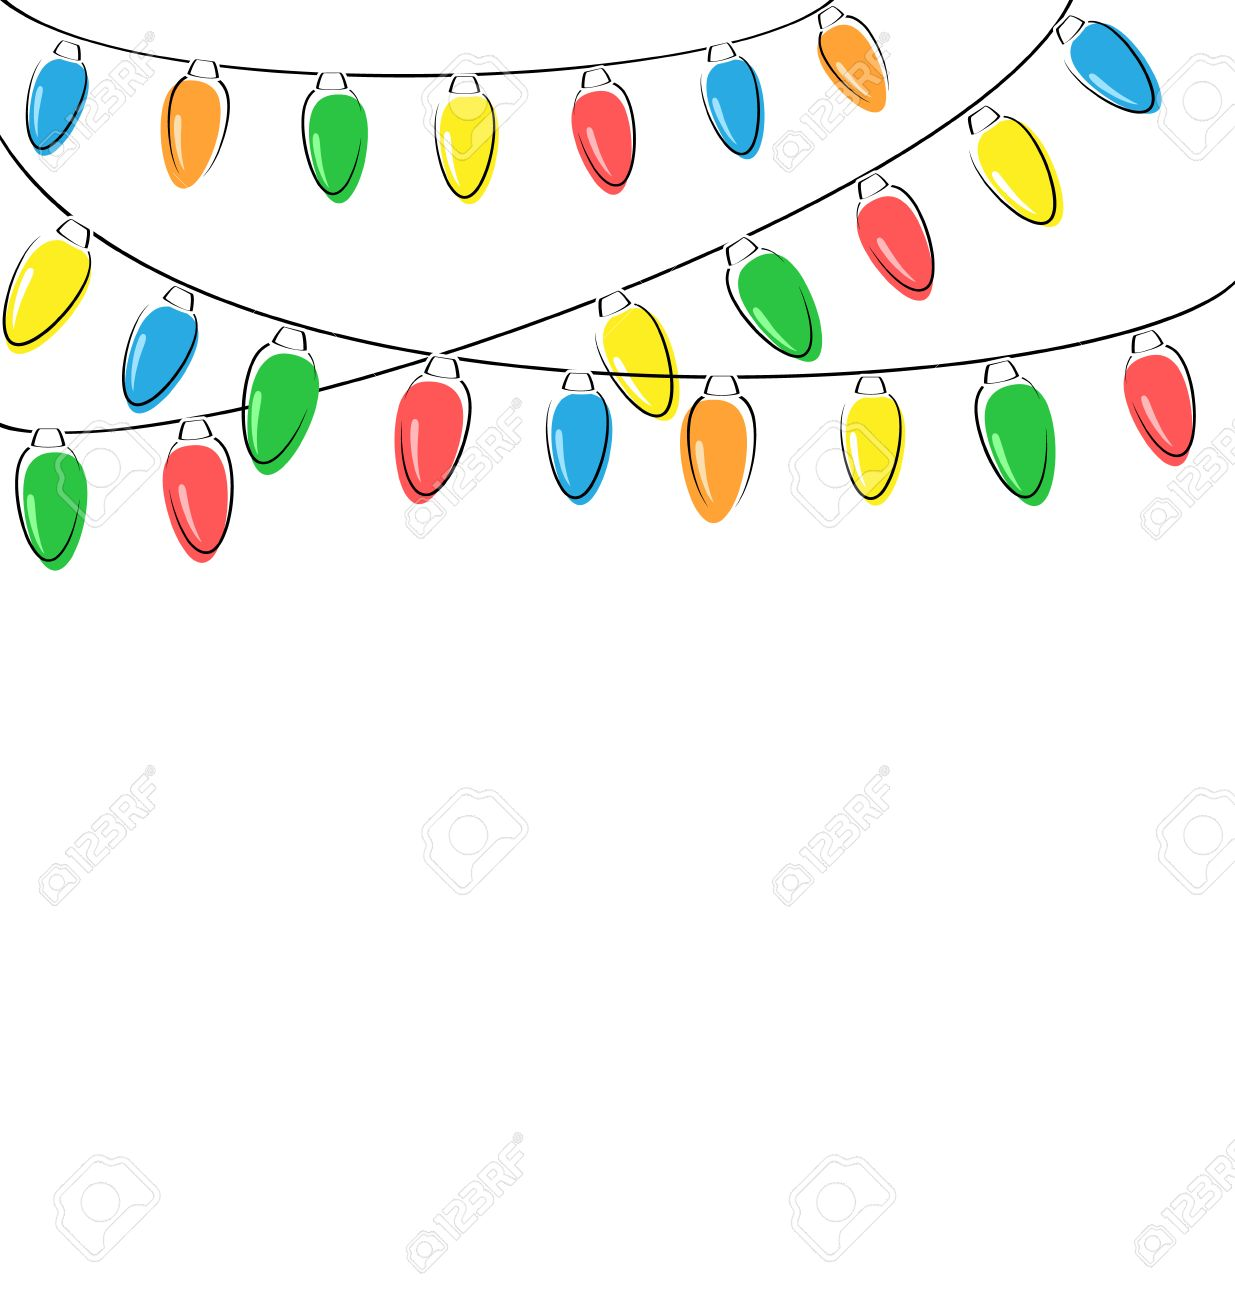 multicolored flat led christmas lights garland isolated on white background stock photo 34247097 - Christmas Light Garland